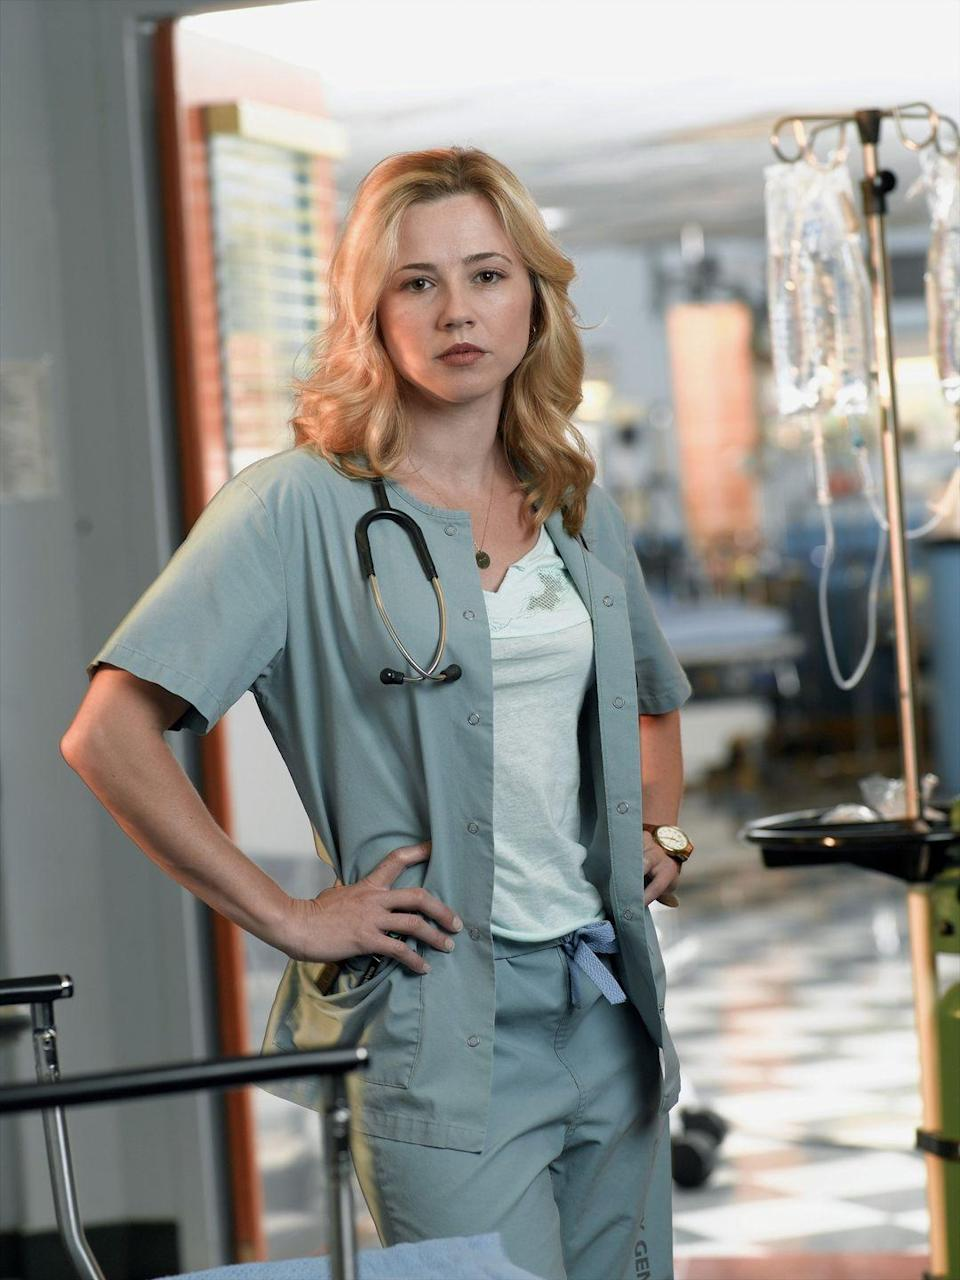 <p>Linda Cardellini first appeared on <em>ER </em>as Samantha Taggart in season 10 and joined the cast shortly after as a nurse. She remained on the show until the series finale in 2009 and has gone on to have a successful career in TV and film, appearing in the 2018 Oscar-nominated movie <em>Green Book.</em></p>